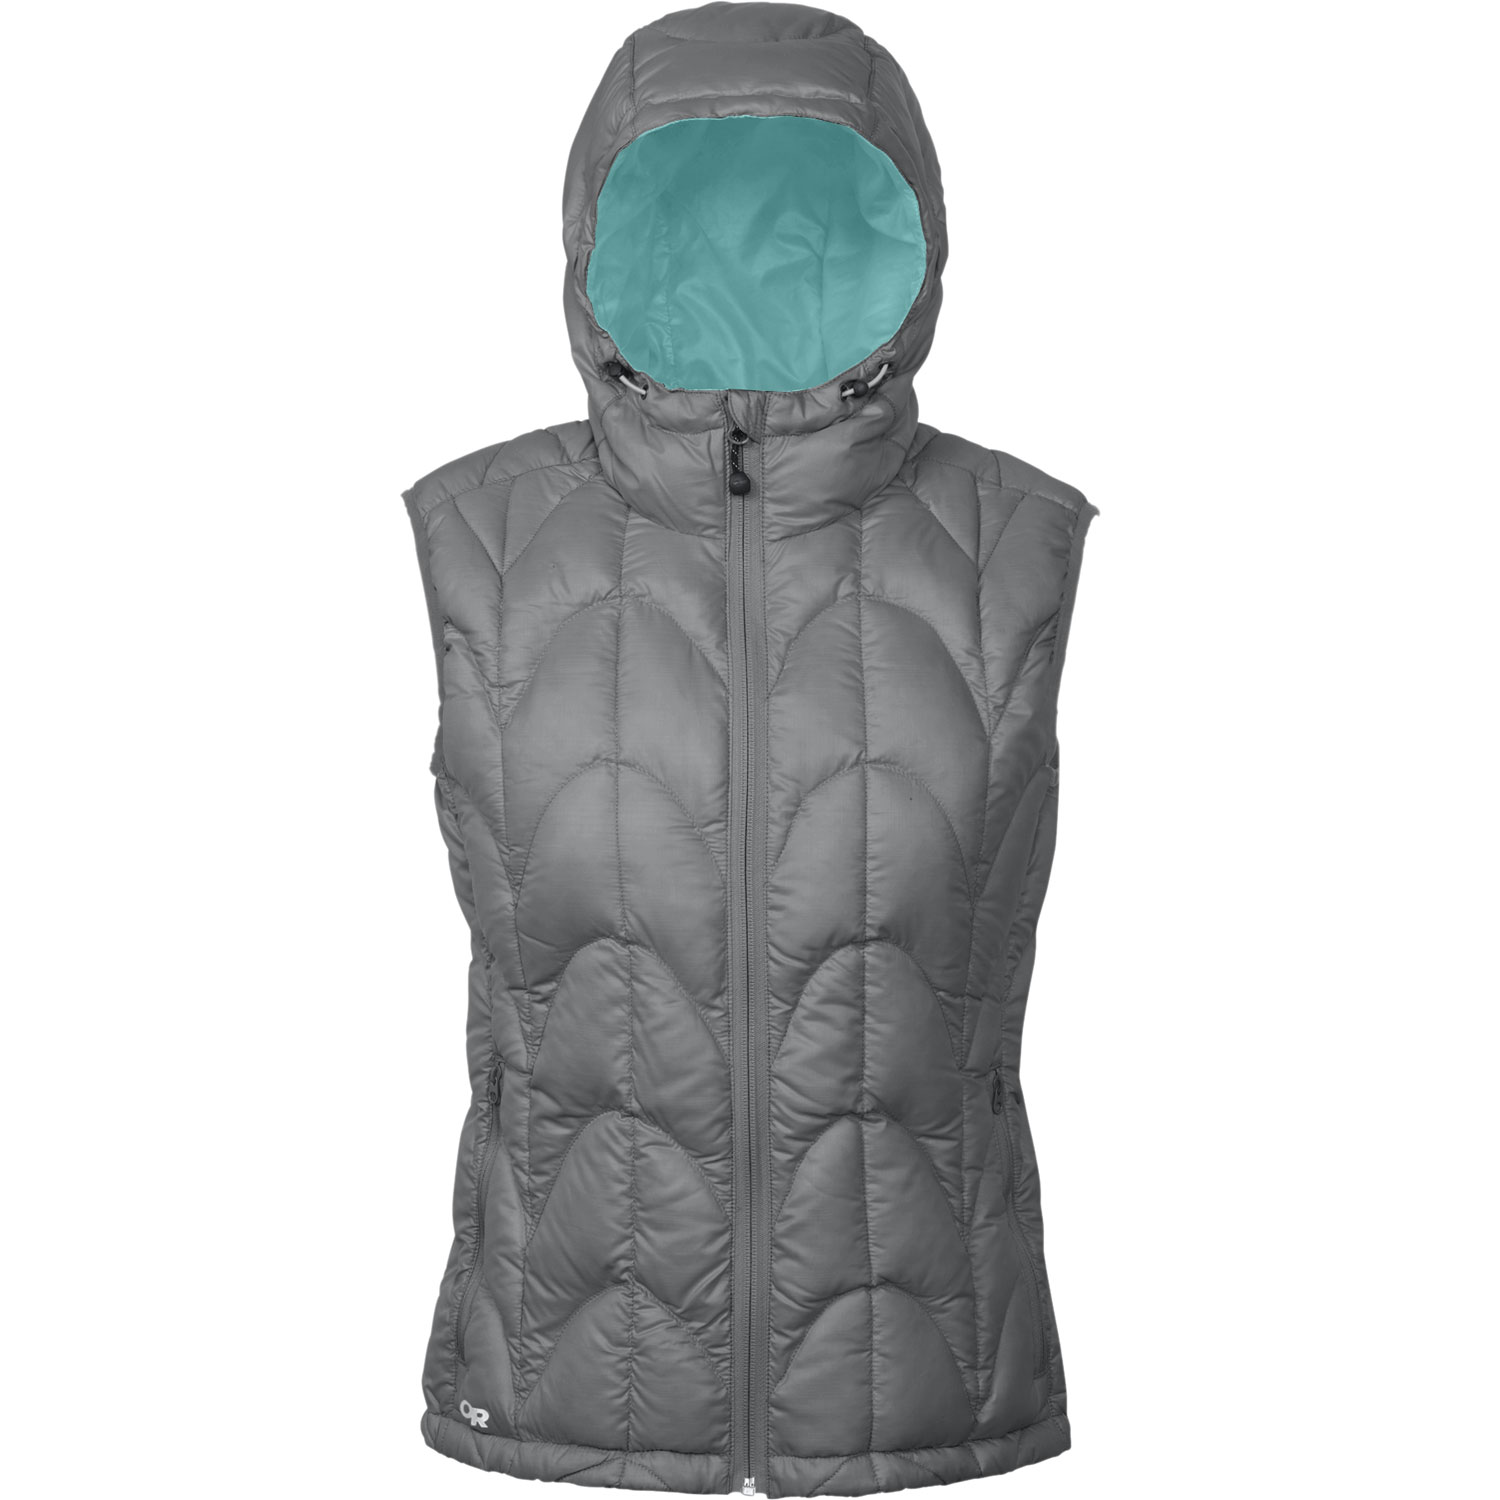 "When a down jacket is overkill, turn to this ultralight, ultra-packable vest for warmth in the backcountryKey Features of the Outdoor Research Aria Vest: 20D, 100% polyester ripstop shell 650+ fill down insulation Ultralight shell Adjustable hood Internal front zip stormflap Multiple pockets: handwarmer, internal Elastic cuffs Drawcord hem Stuff sack included (M) 9.7 oz. / 274 g STANDARD FIT CENTER BACK LENGTH: 26"" / 65 cm - $160.00"